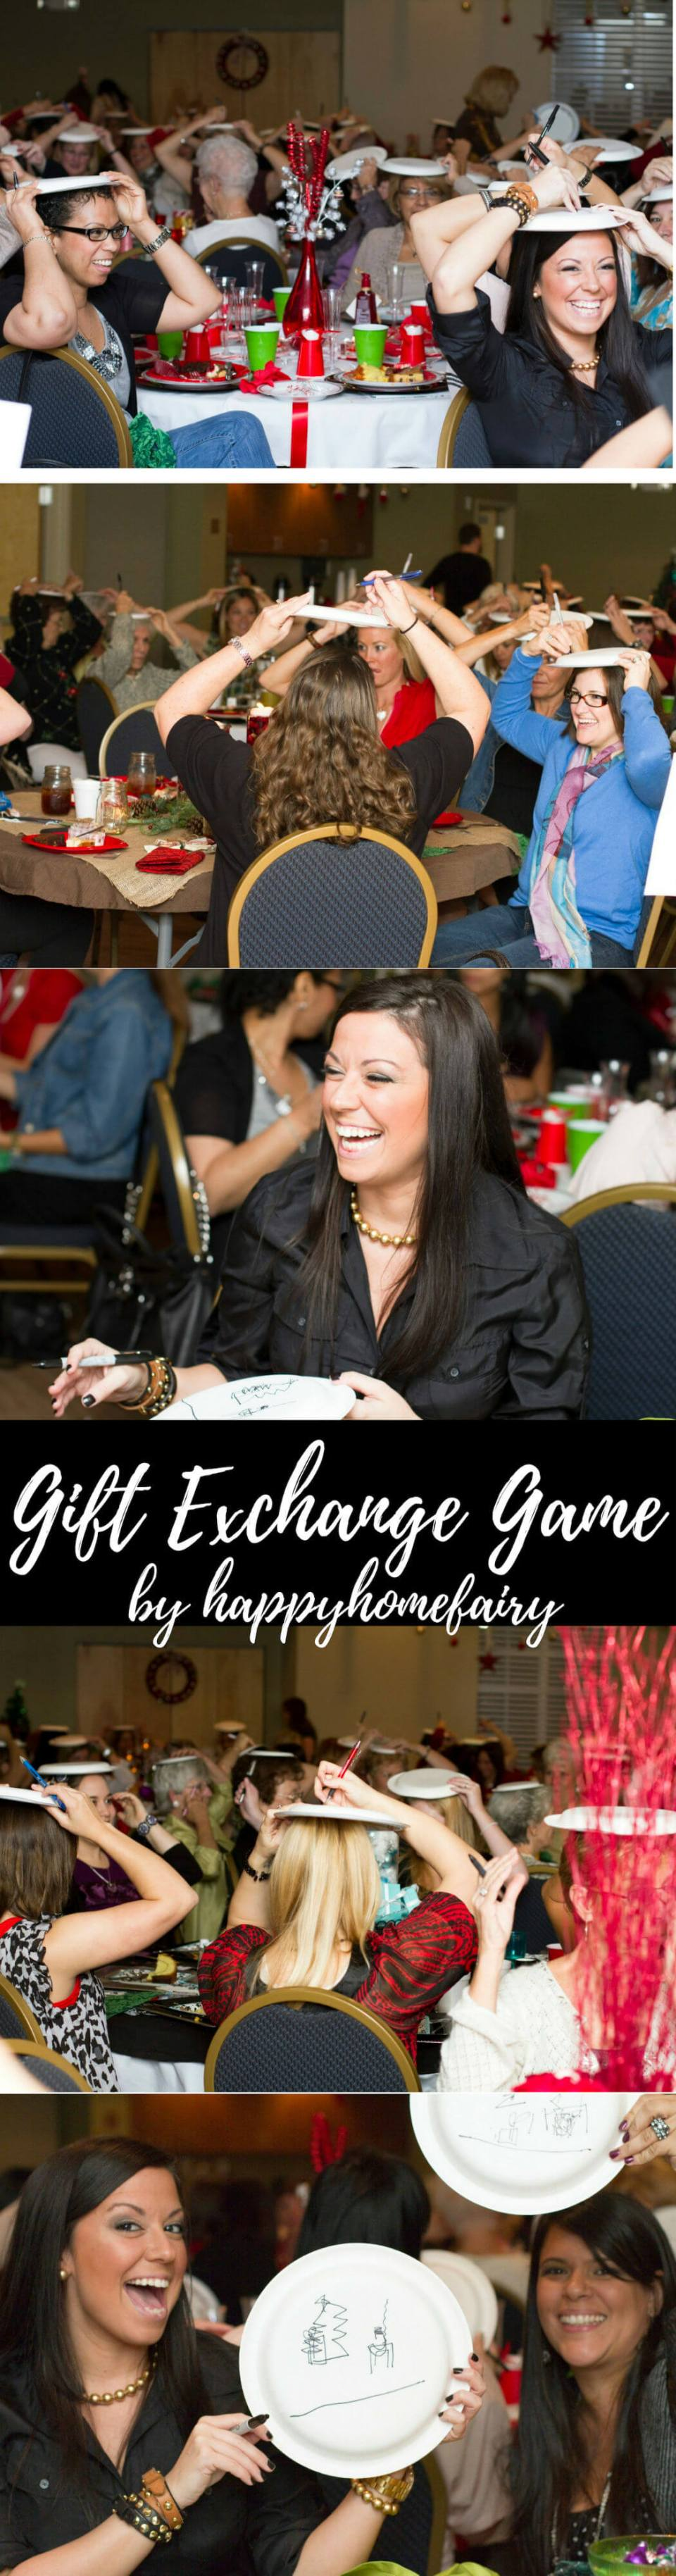 Gift Exchange Game   Christmas Party Games for Adults - FarmFoodFamily.com